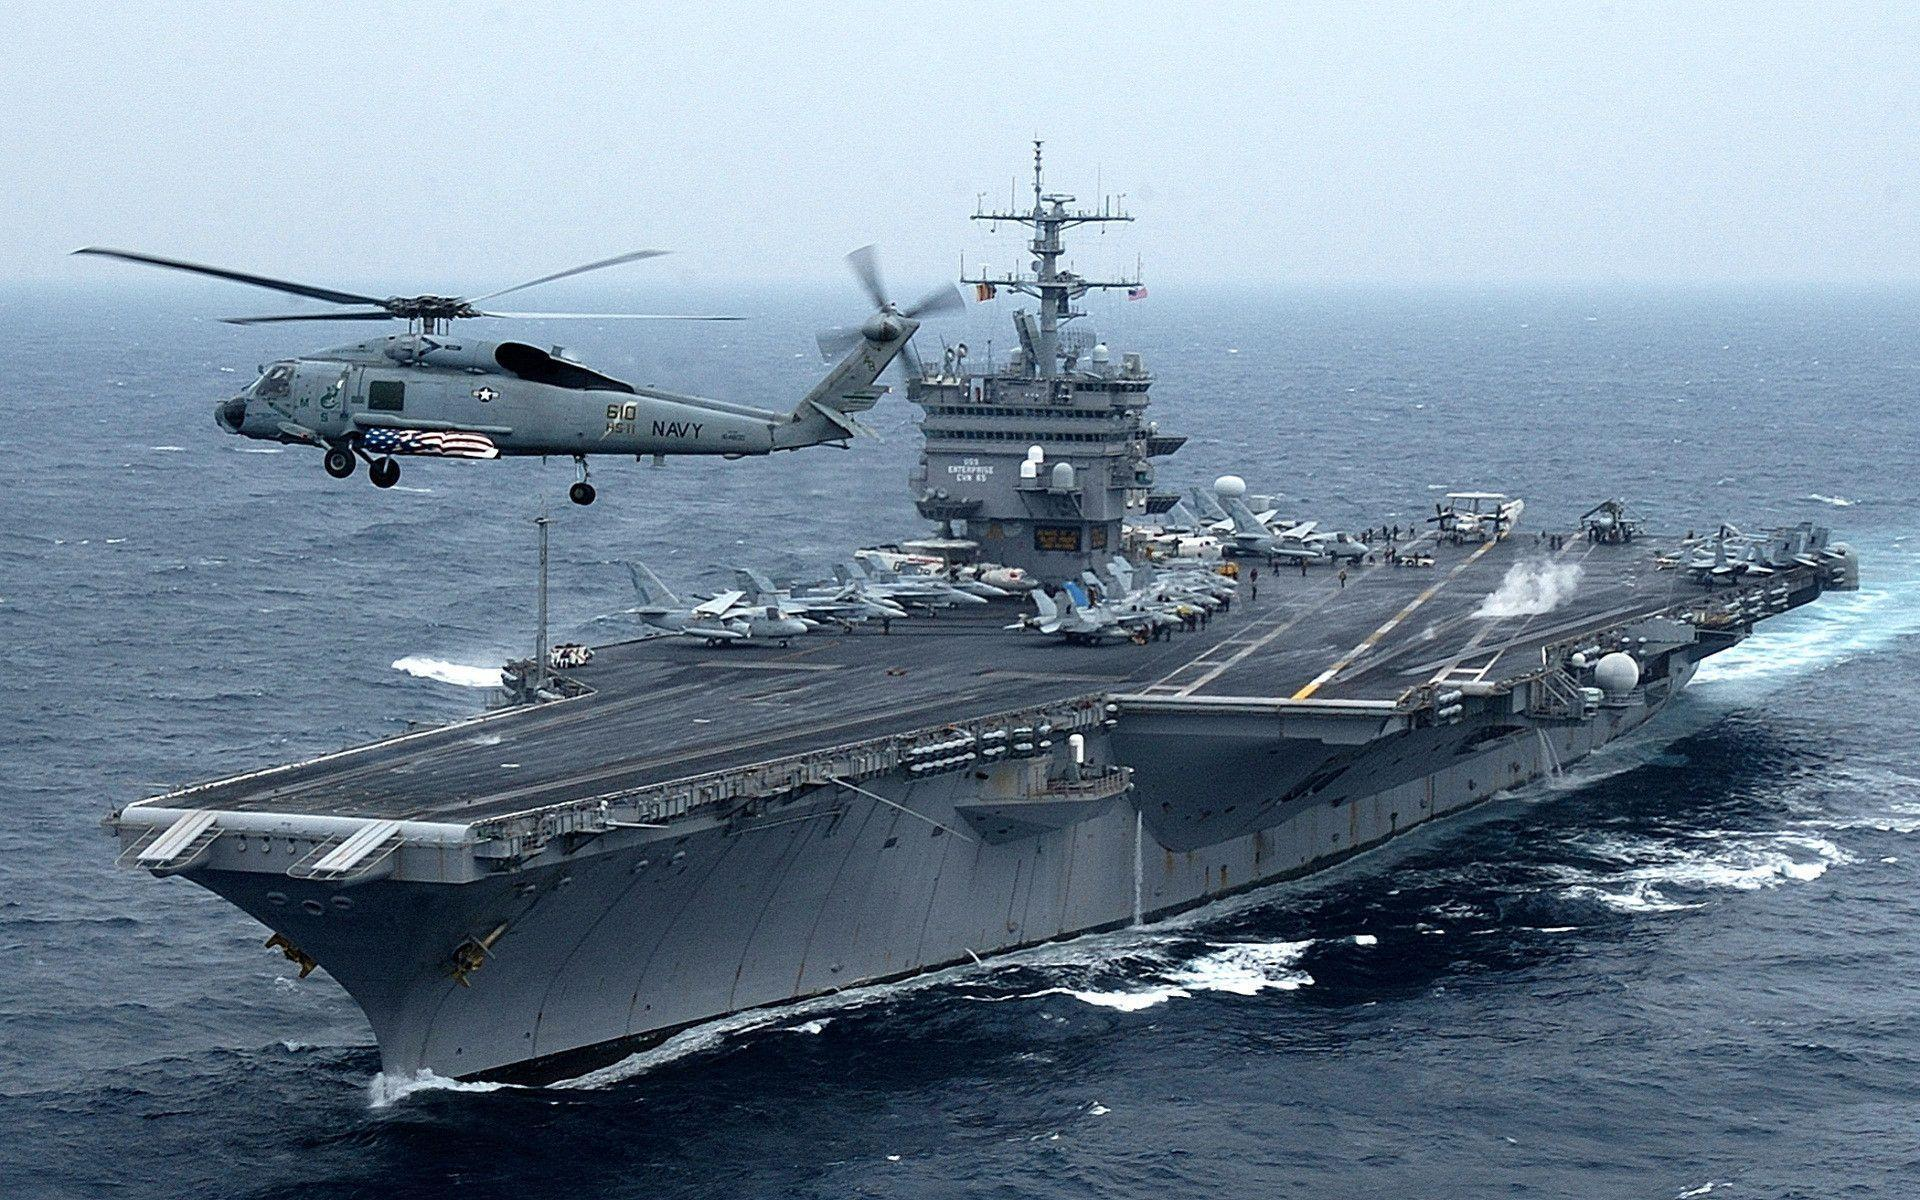 Aircraft carrier wallpapers wallpaper cave aircraft wallpaper news aircraft carrier wallpapers wallpaper cave voltagebd Images